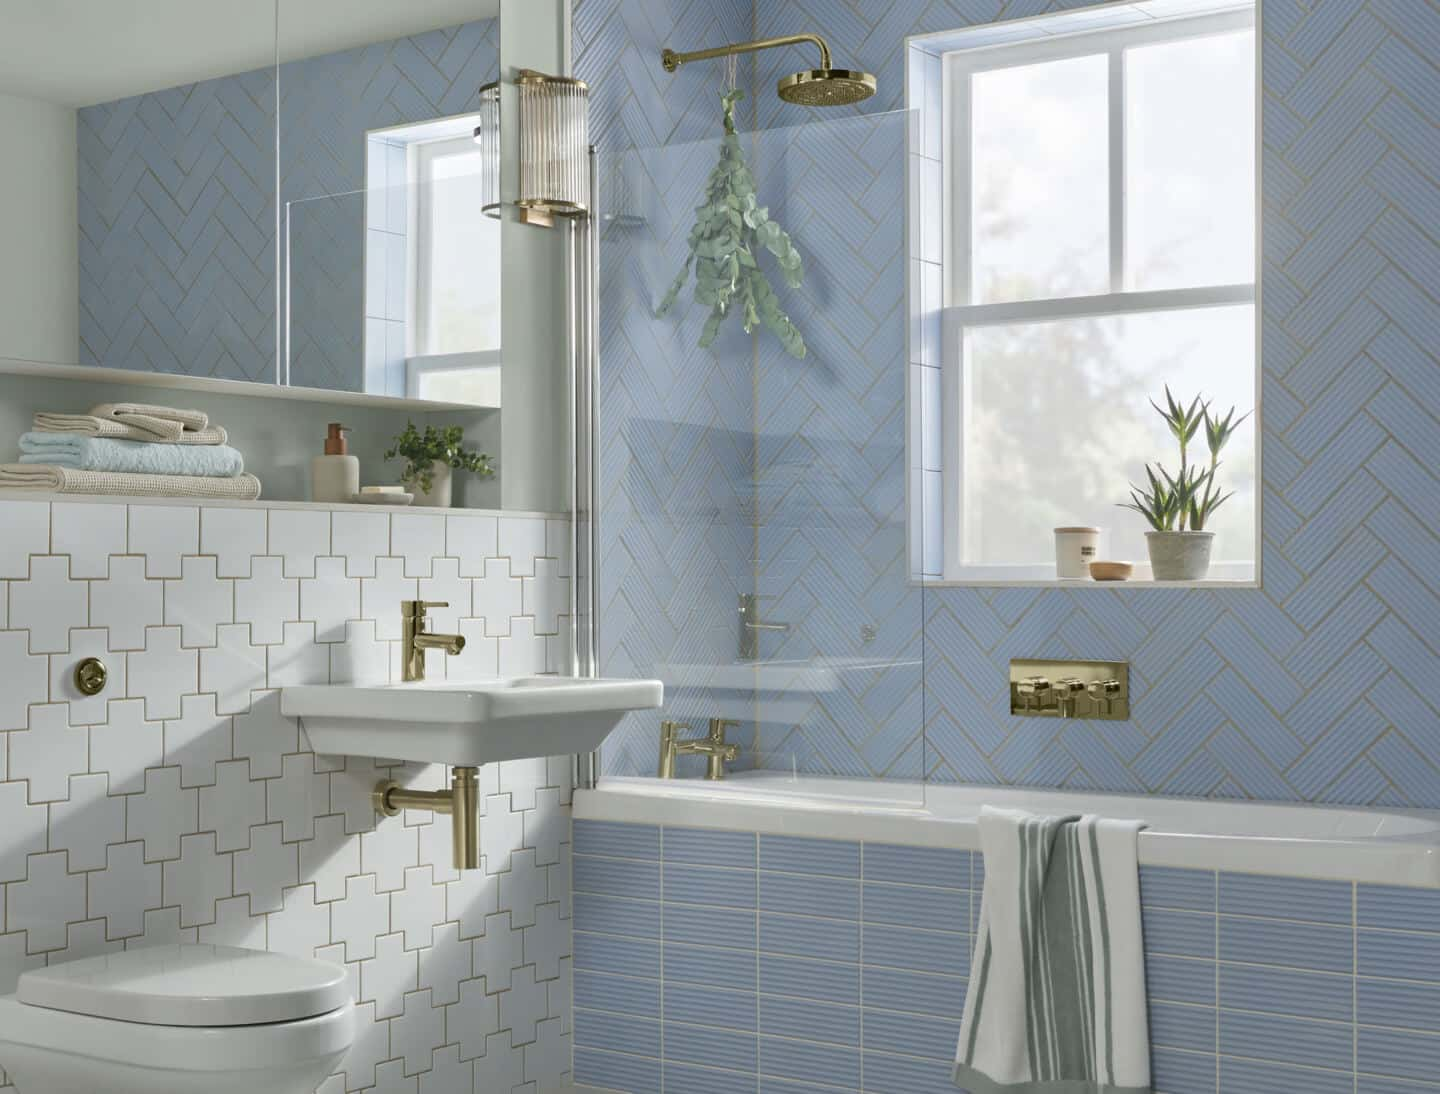 A bathroom tiled in Topps Tiles Flute tiles Dulux Colour of the Year 2022 Bright Skies